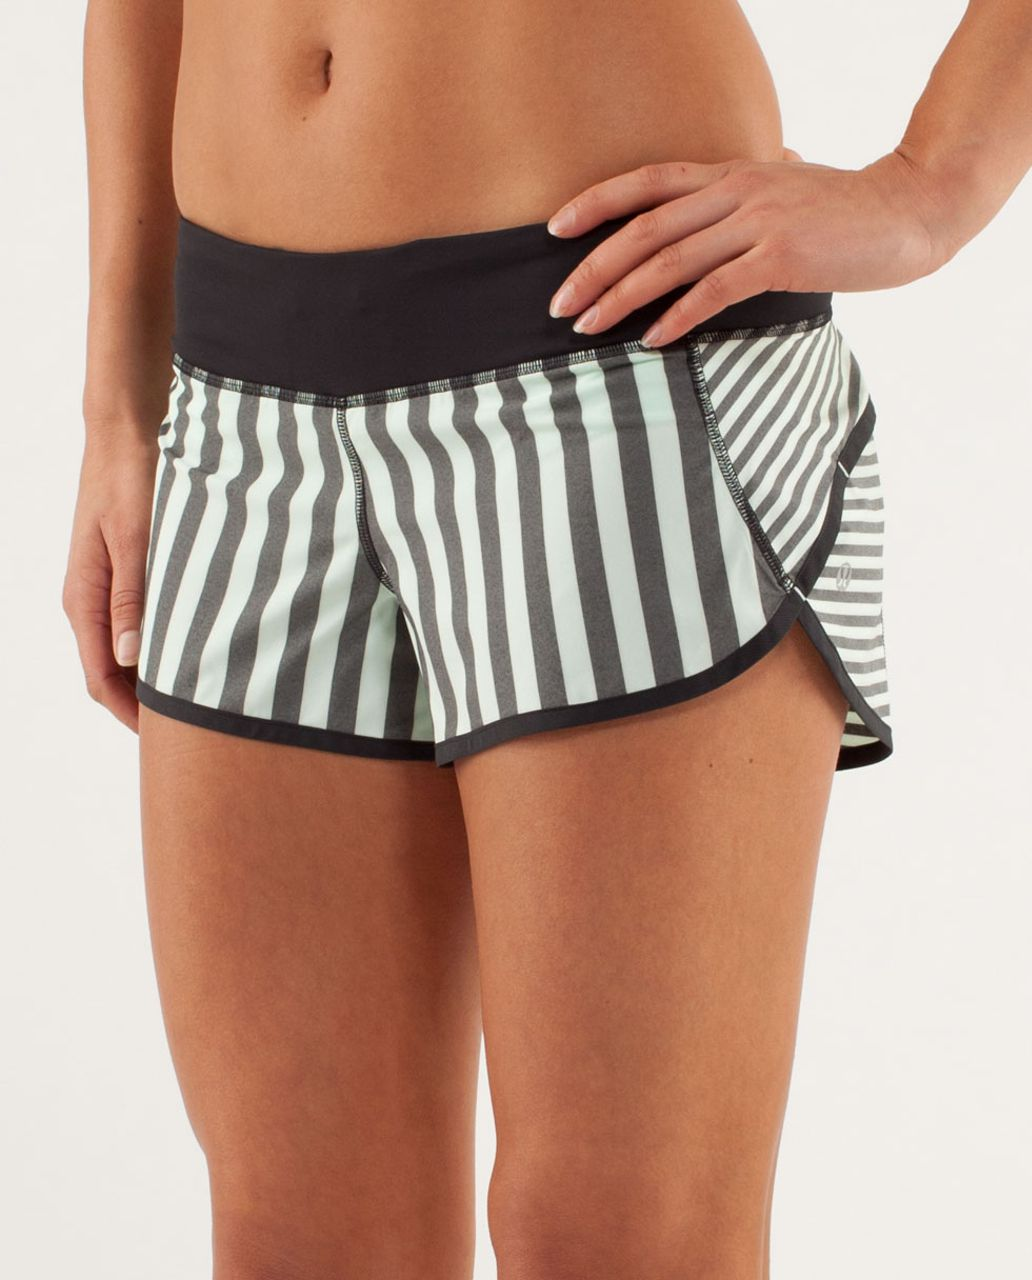 Lululemon Run:  Speed Short - Sea Stripe Mint Moment Black / Black